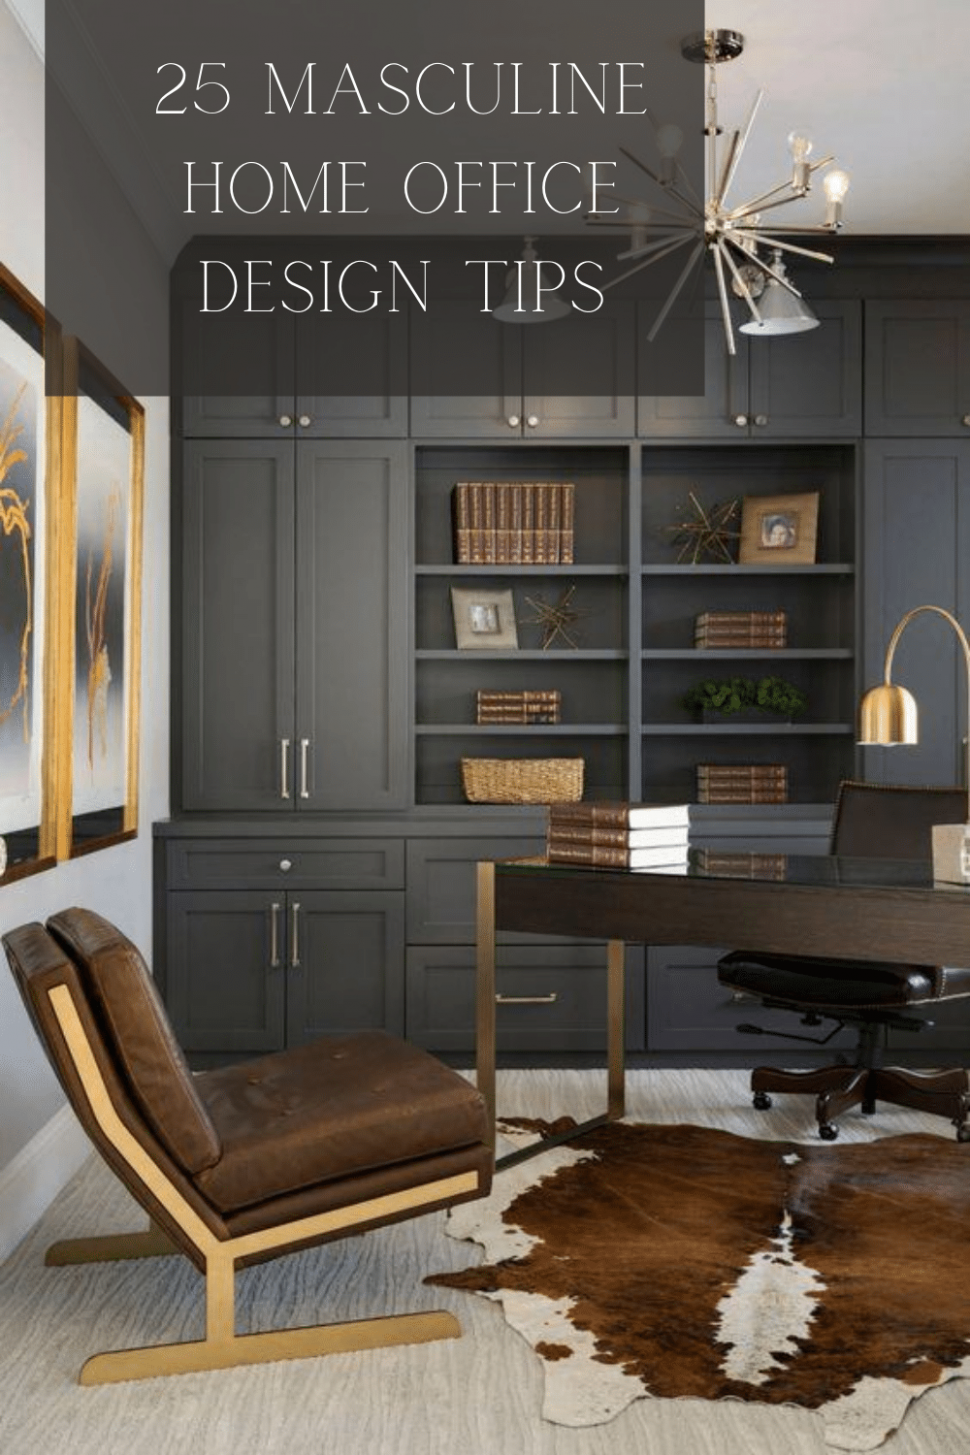 11 ULTIMATE MASCULINE HOME OFFICE IDEAS - Home Office Molding Ideas